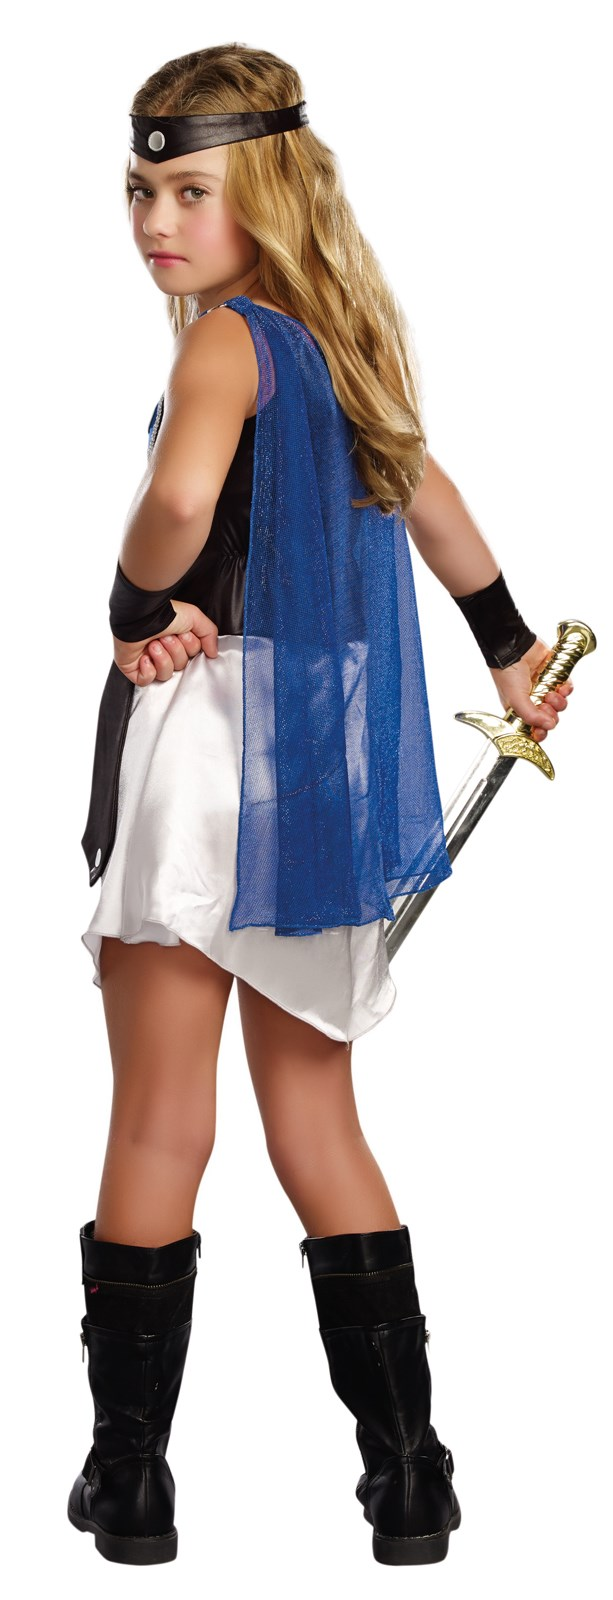 House decorations for halloween - Gladiator Girl Costume For Kids Buycostumes Com